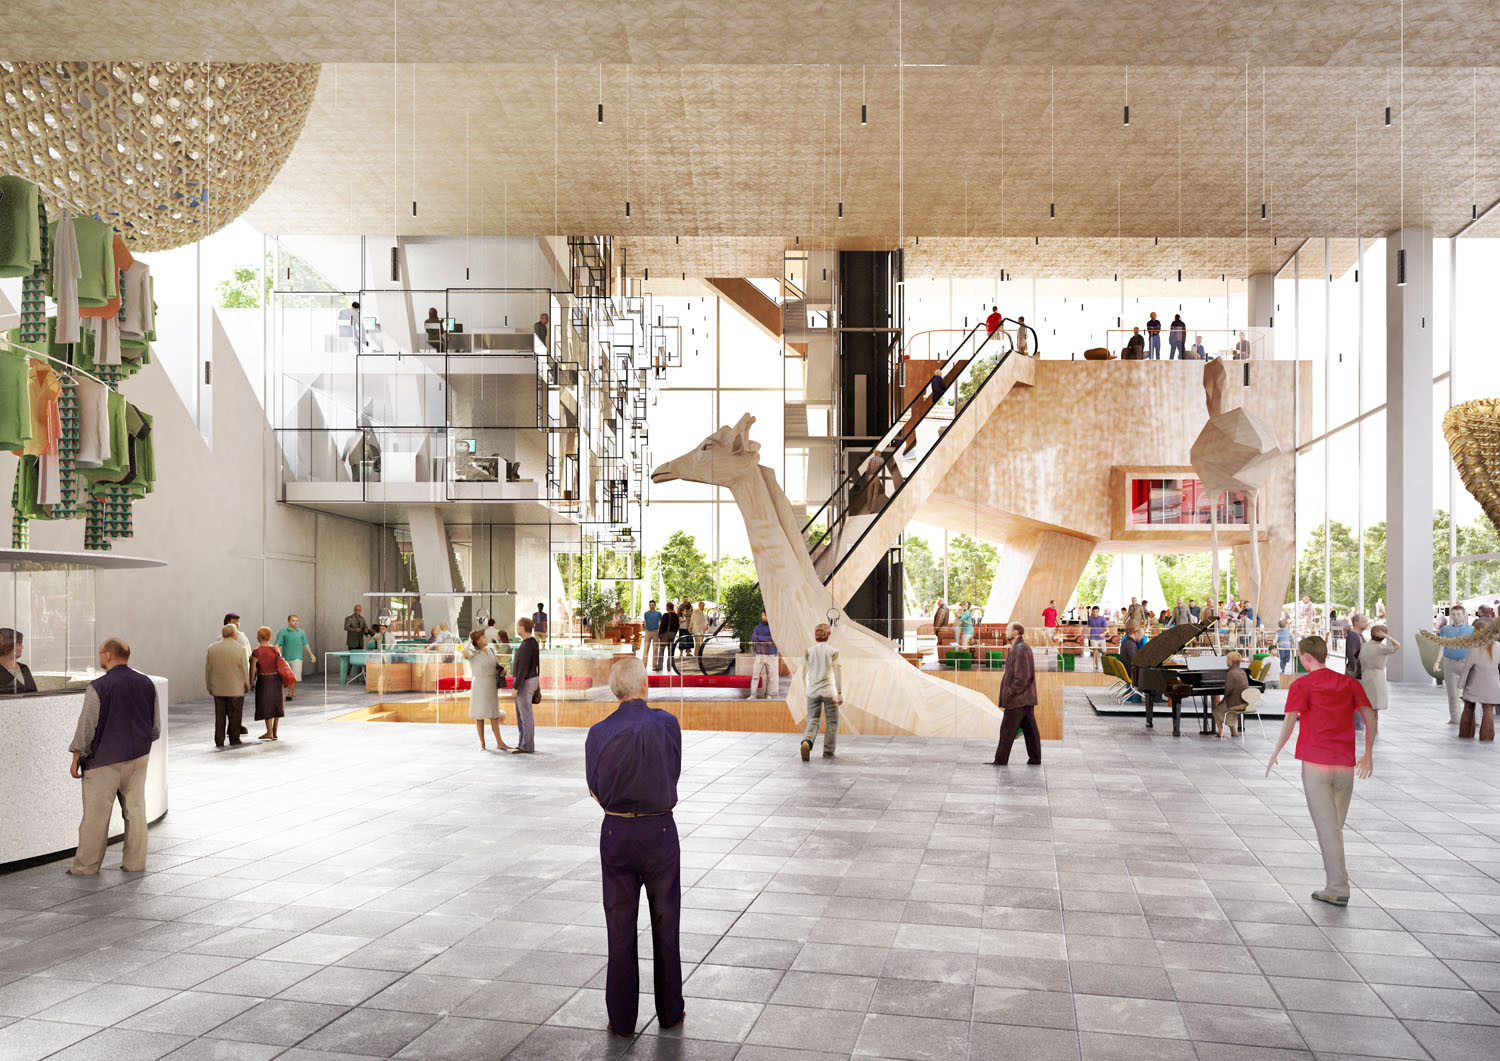 Gallery of NL Architects Shortlisted to Design ArtA Cultural Center in Arnhem   - 10